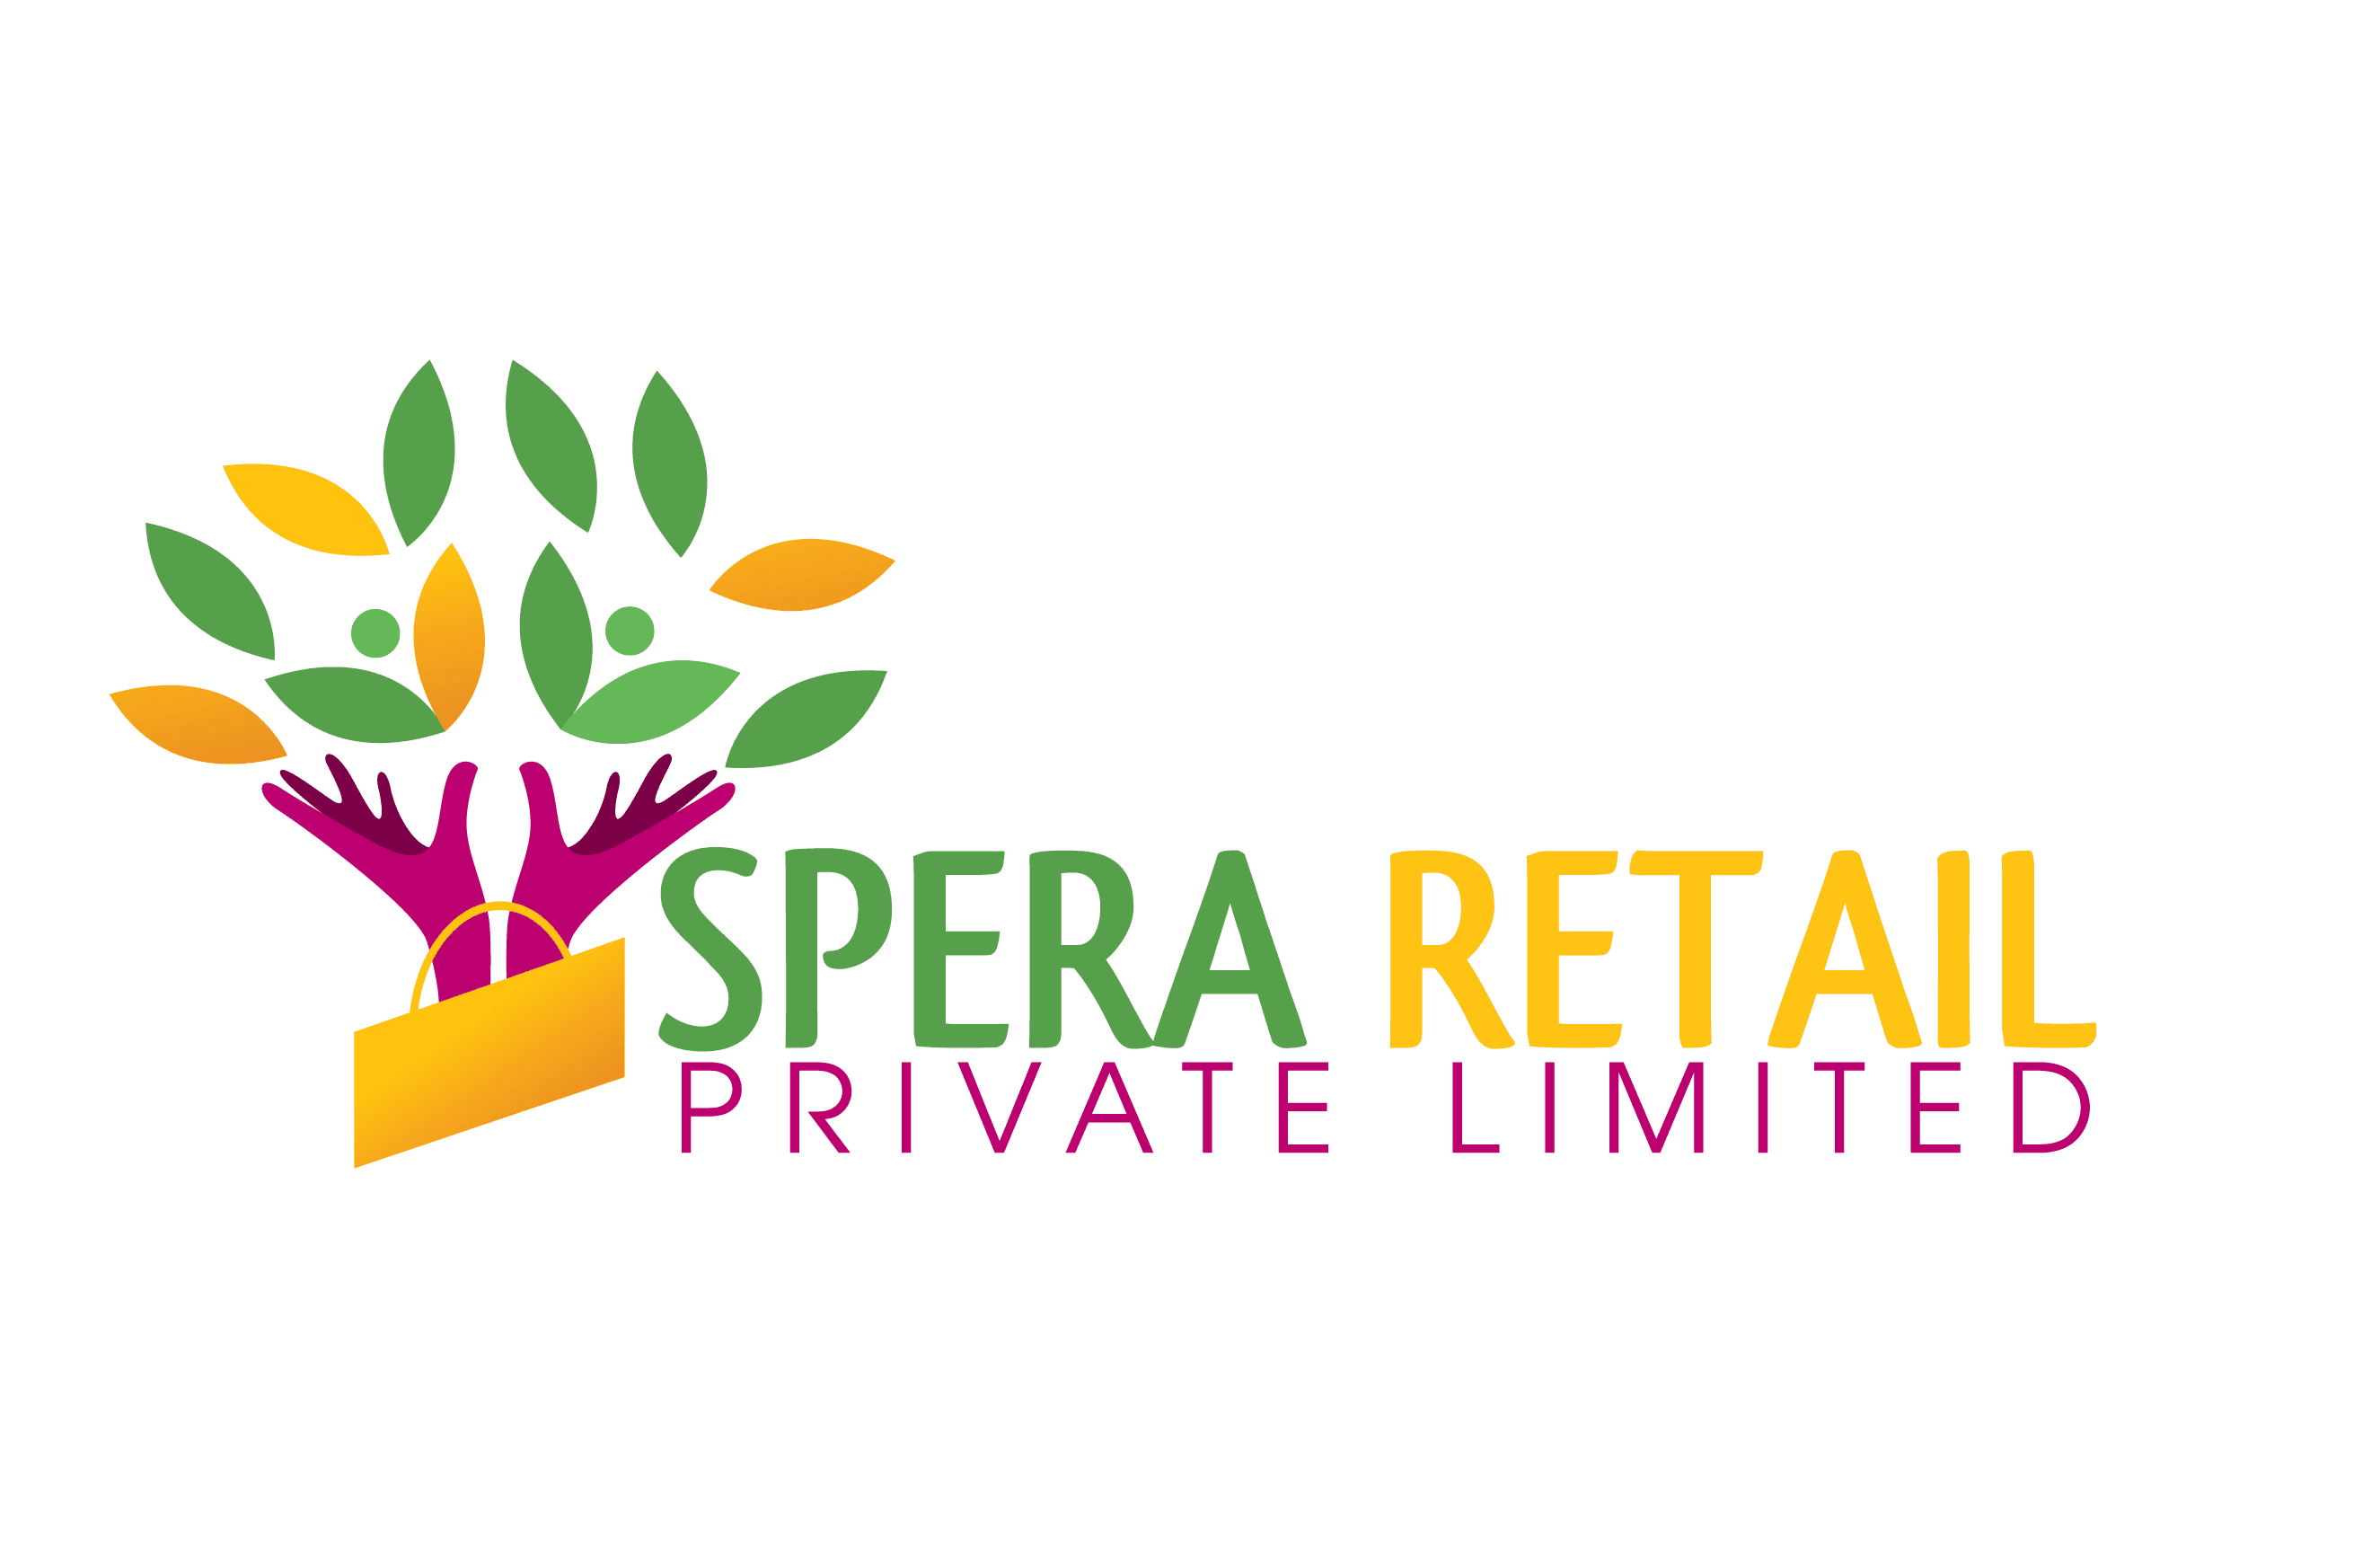 SPERA RETAIL PRIVATE LIMITED